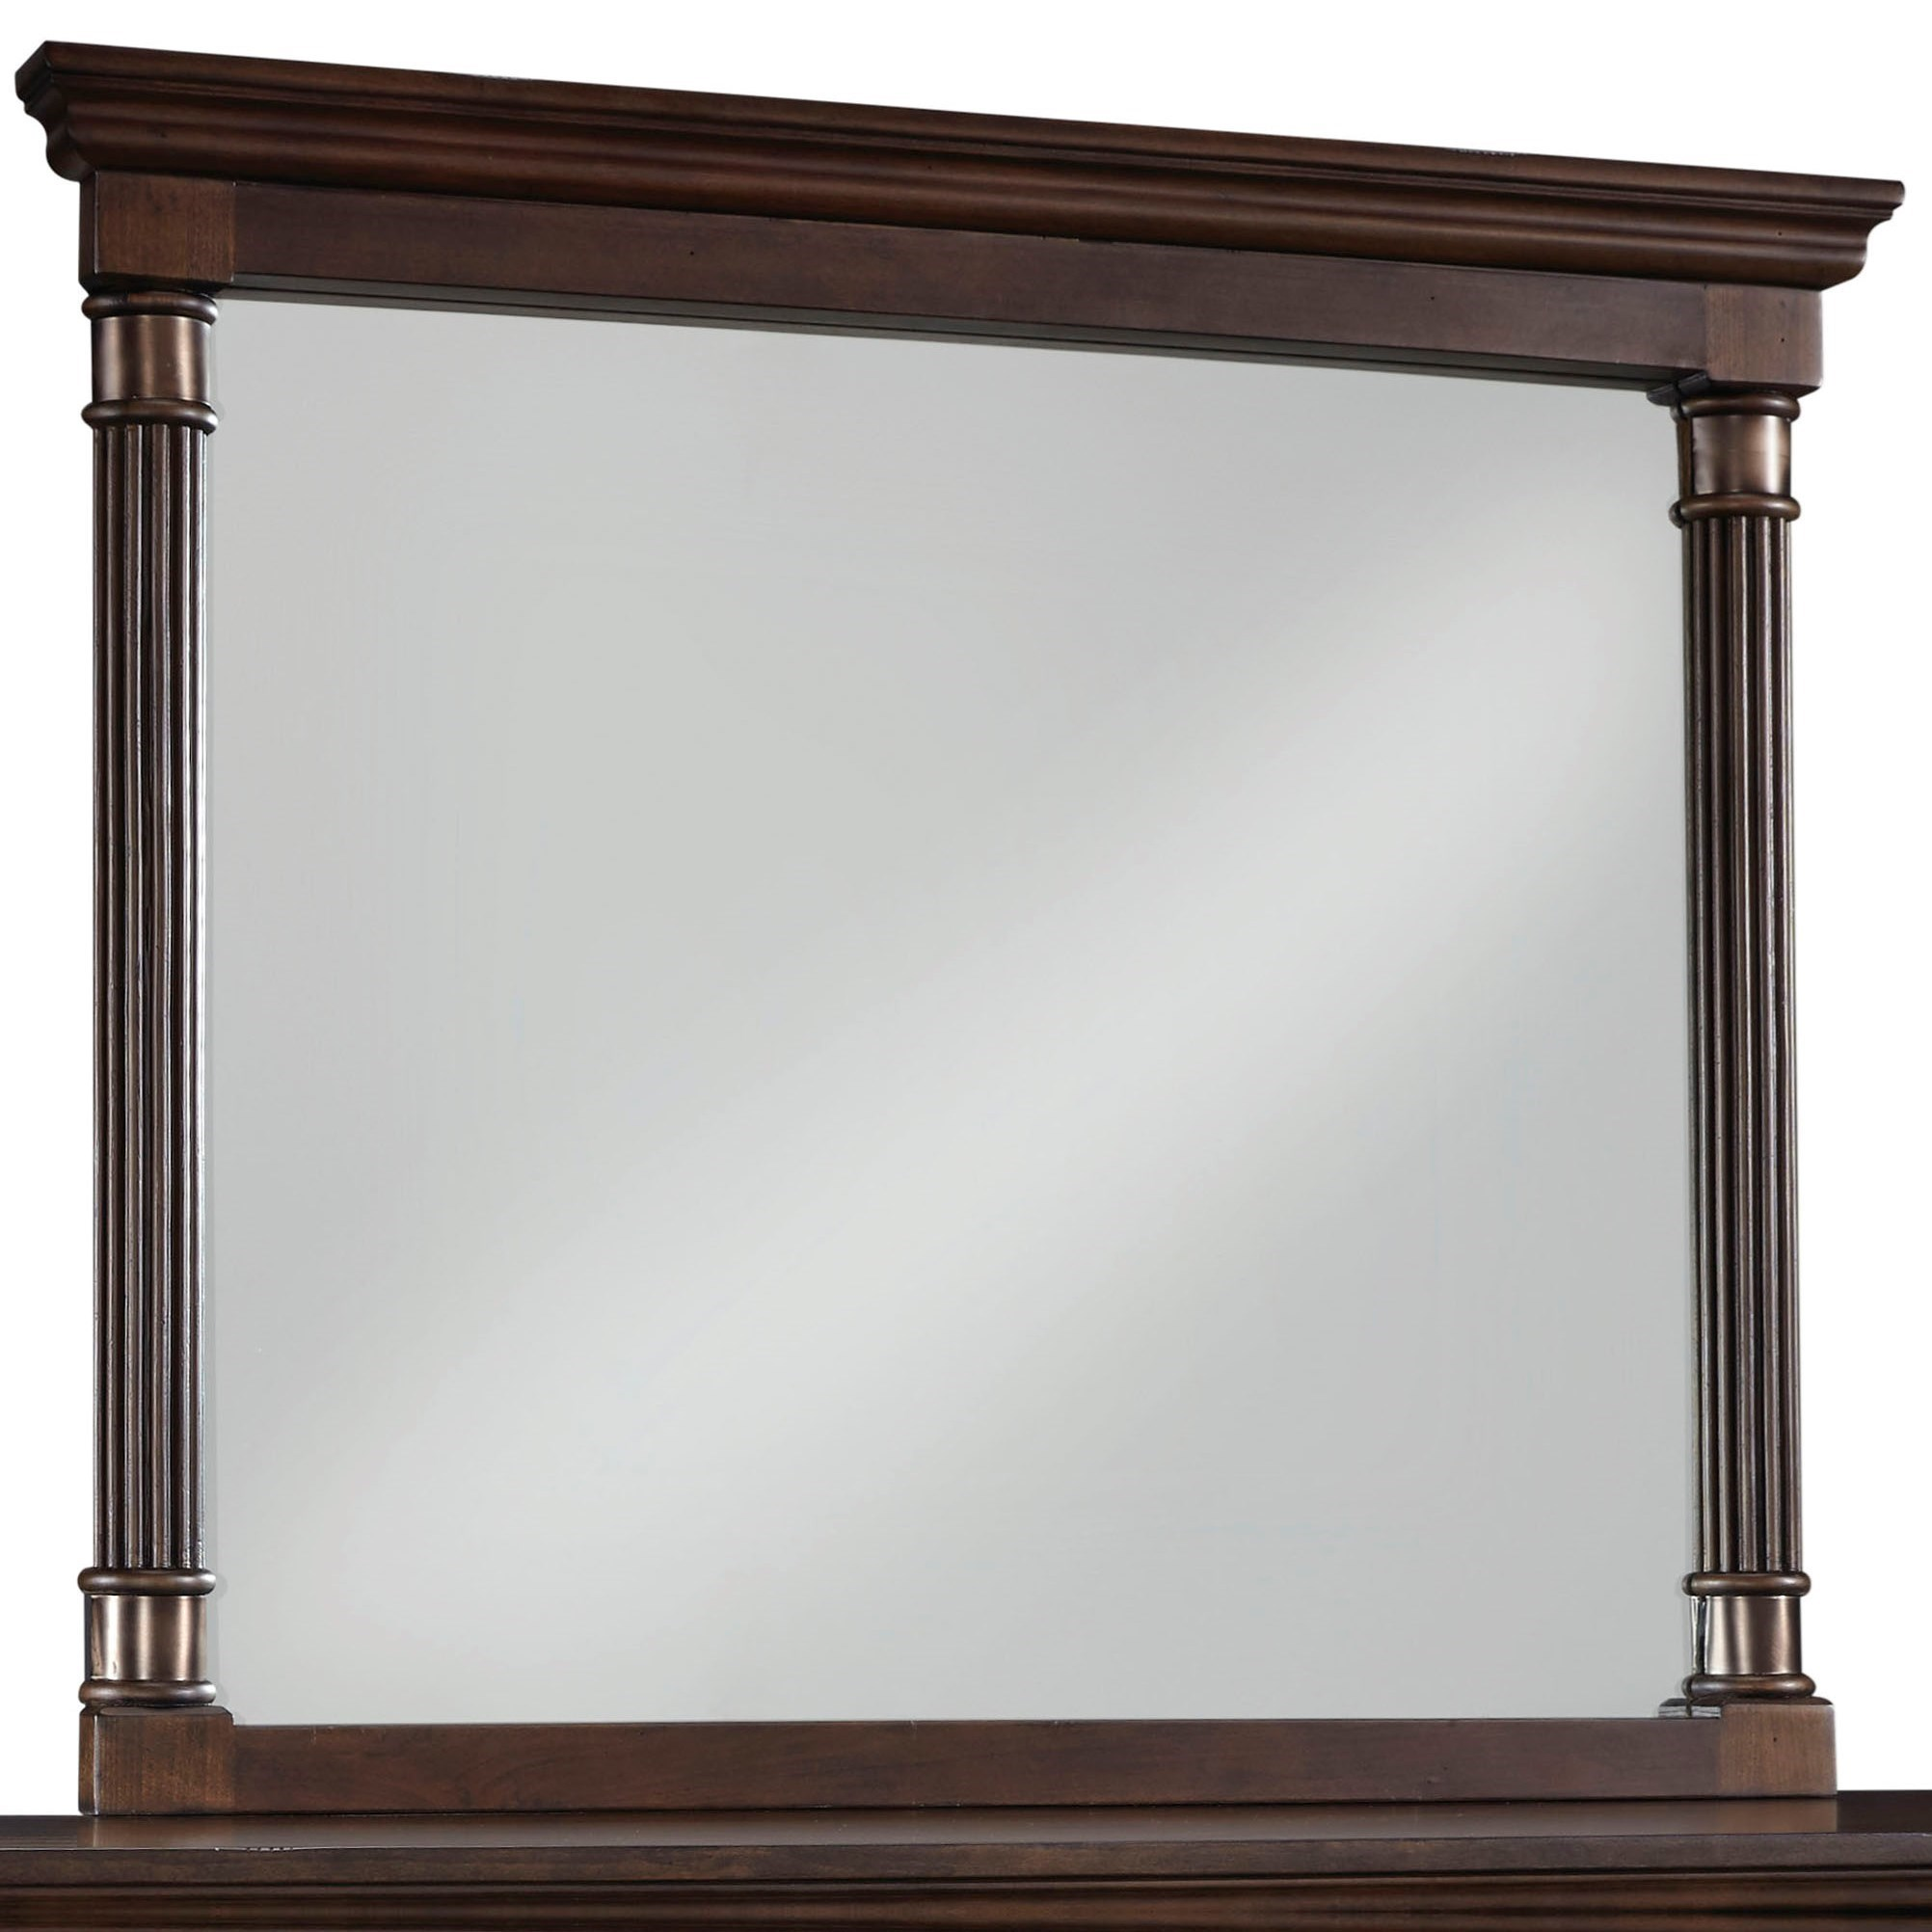 Standard Furniture Oxford Mirror - Item Number: 99108